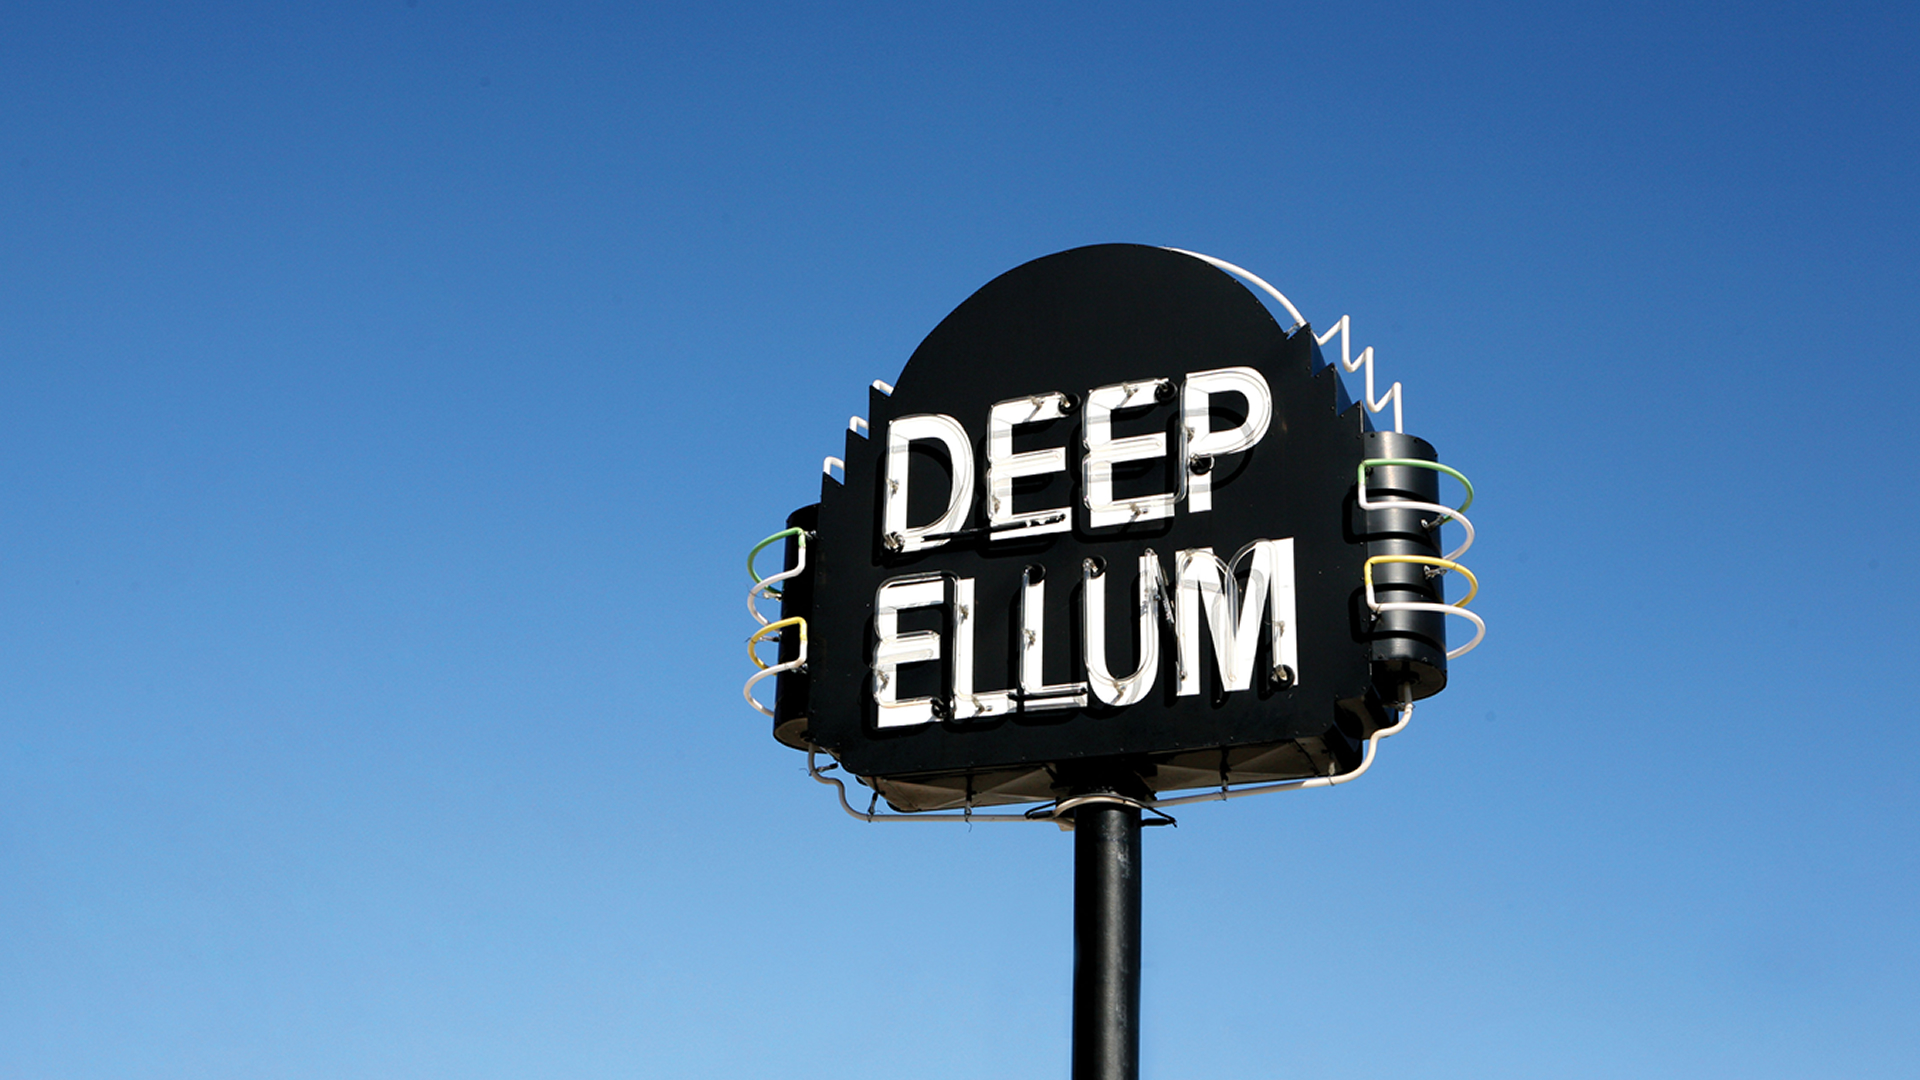 The lively Deep Ellum entertainment district is known for its vibrant street murals, quirky art galleries and long-time concert venues for indie and blues. Brewpubs, cocktail bars and Tex-Mex eateries draw a boisterous crowd on weekends.